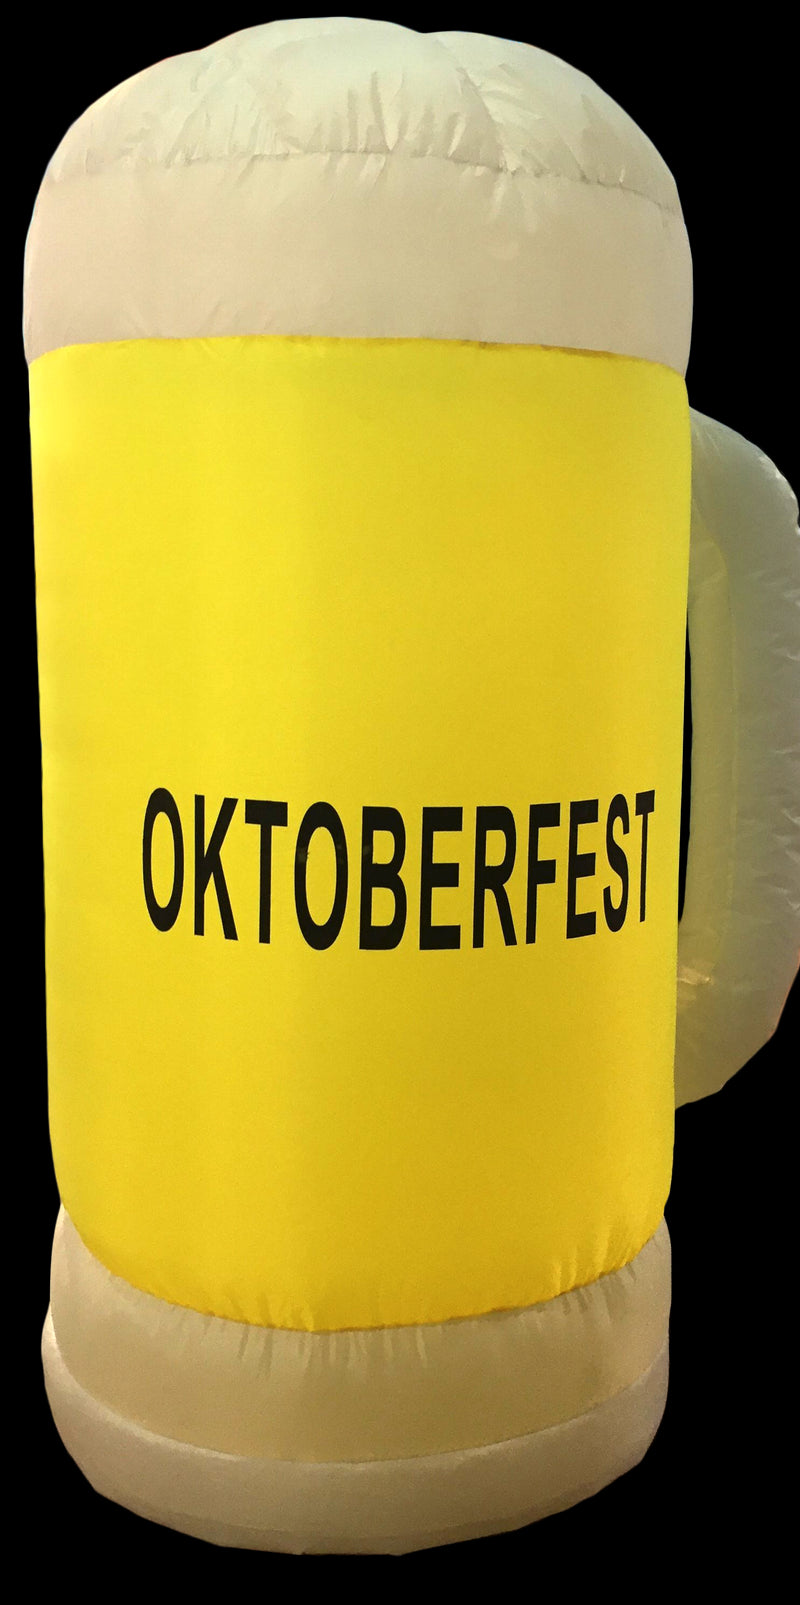 7' Tall Oktoberfest Party Large Inflatable Beer Stein - ScandinavianGiftOutlet